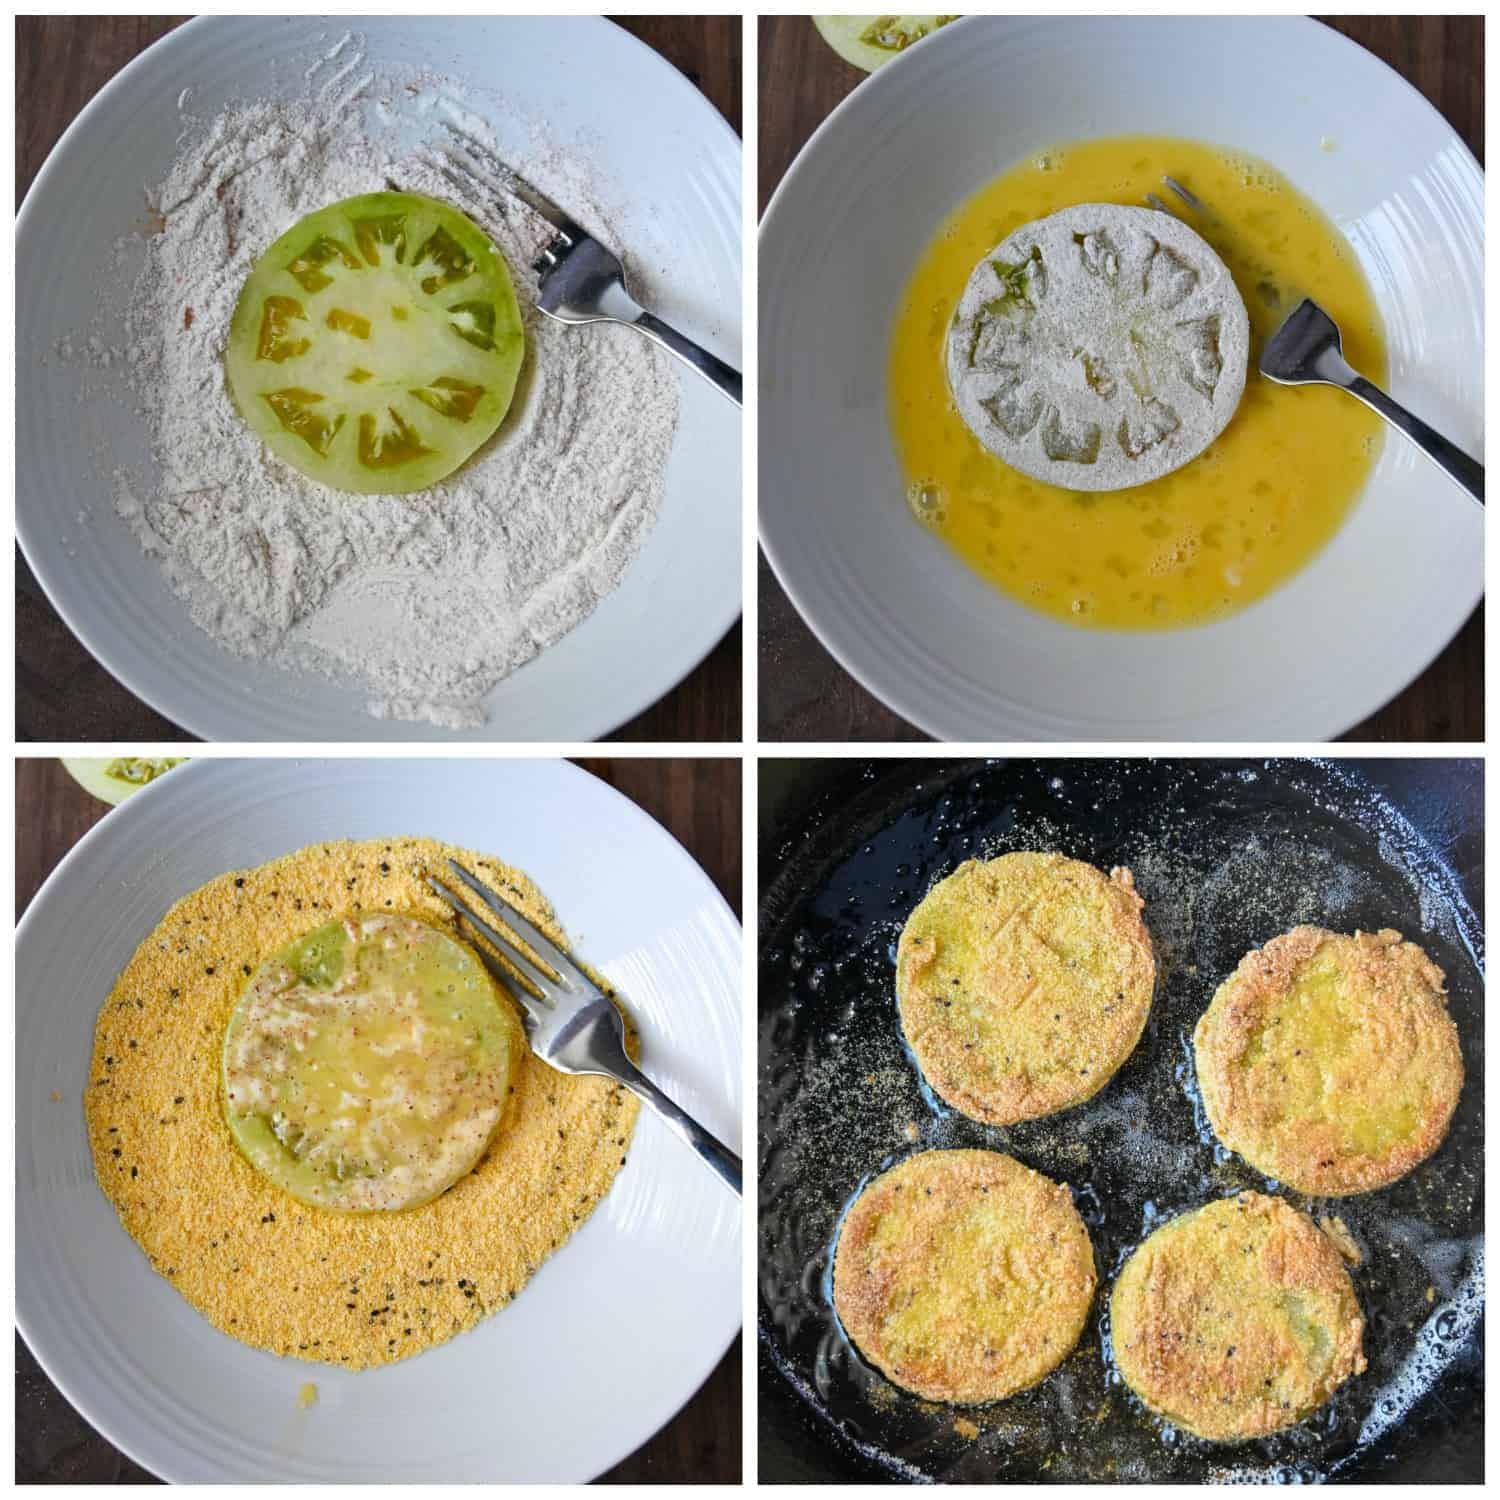 Four process step photos. First one, green tomato slice placed in a white bowl with flour. Secone one, flour dipped tomato jnow placed in a bowl of whicked eggs. Third one, egg dipped tomato now placed in a bowl with cornmeal. Fourth one, coated tomatoes placed in ahot skillet to fry.